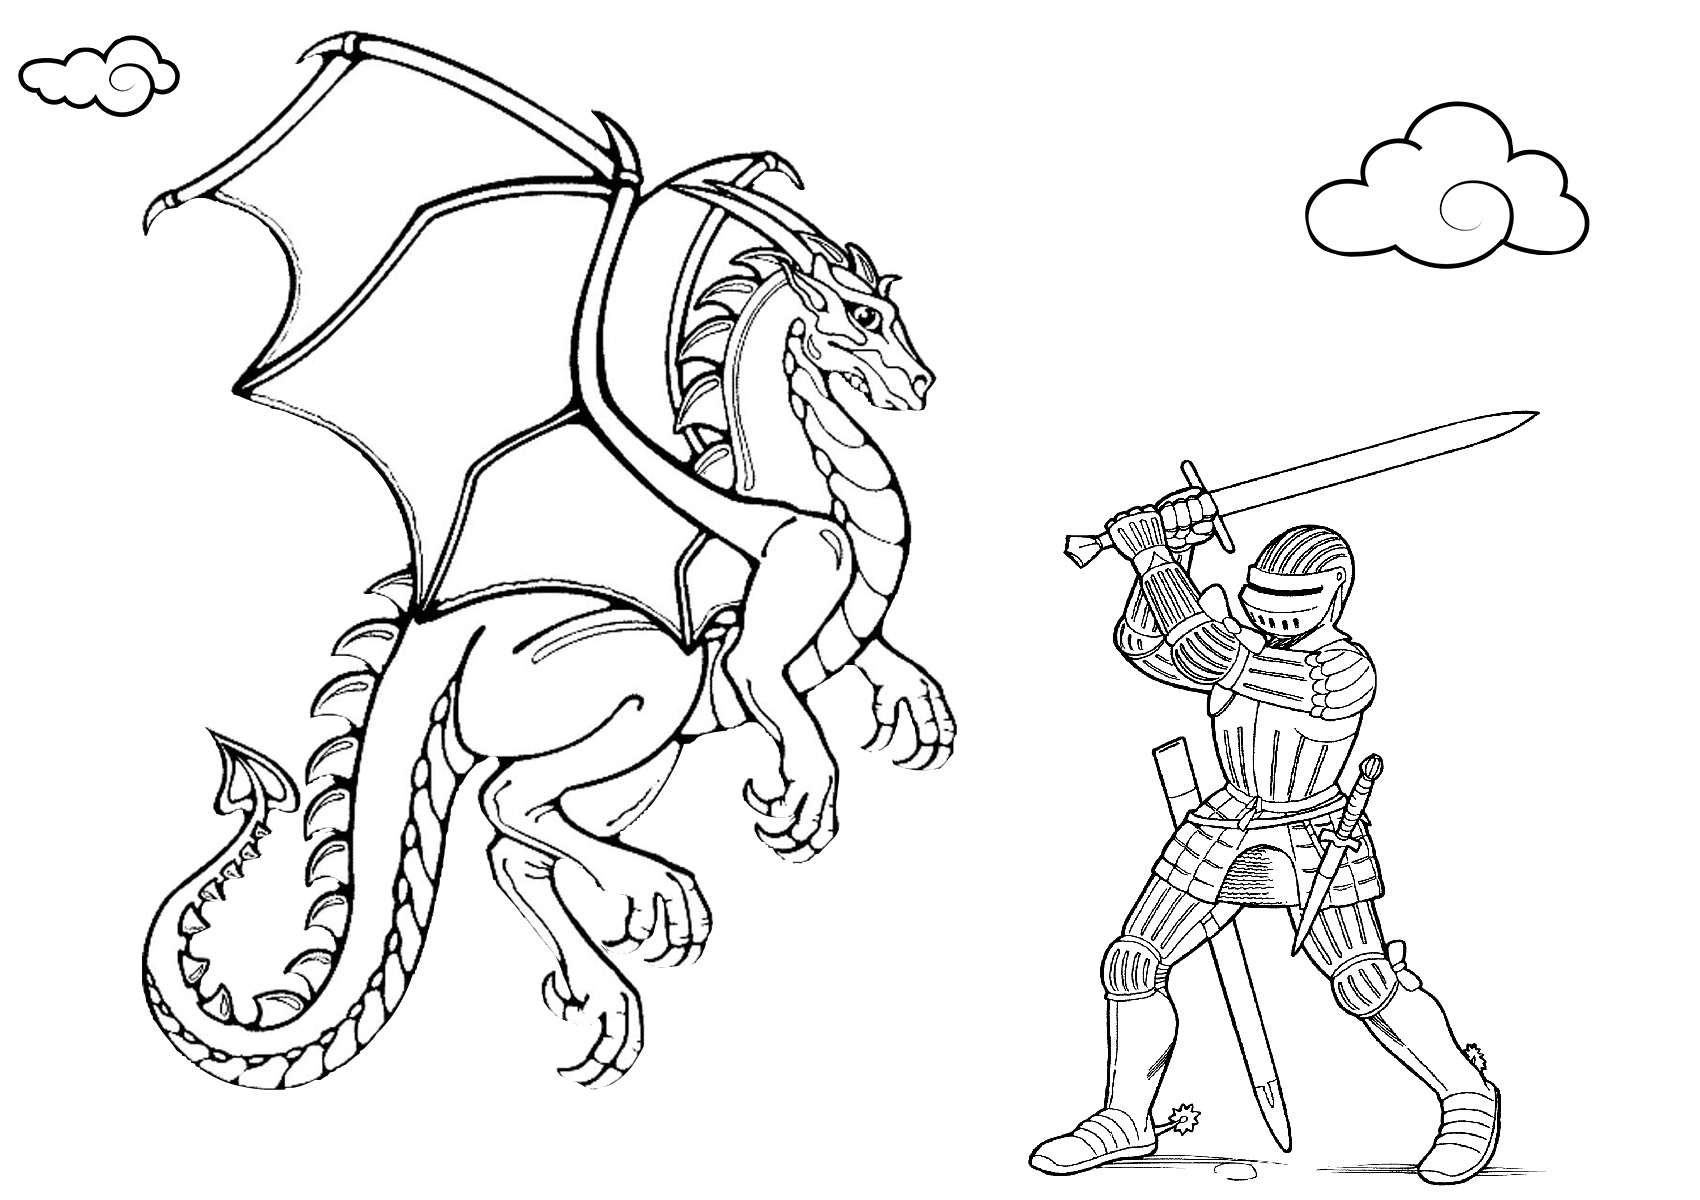 Dragon Warrior Knight and Dragon Coloring Pages